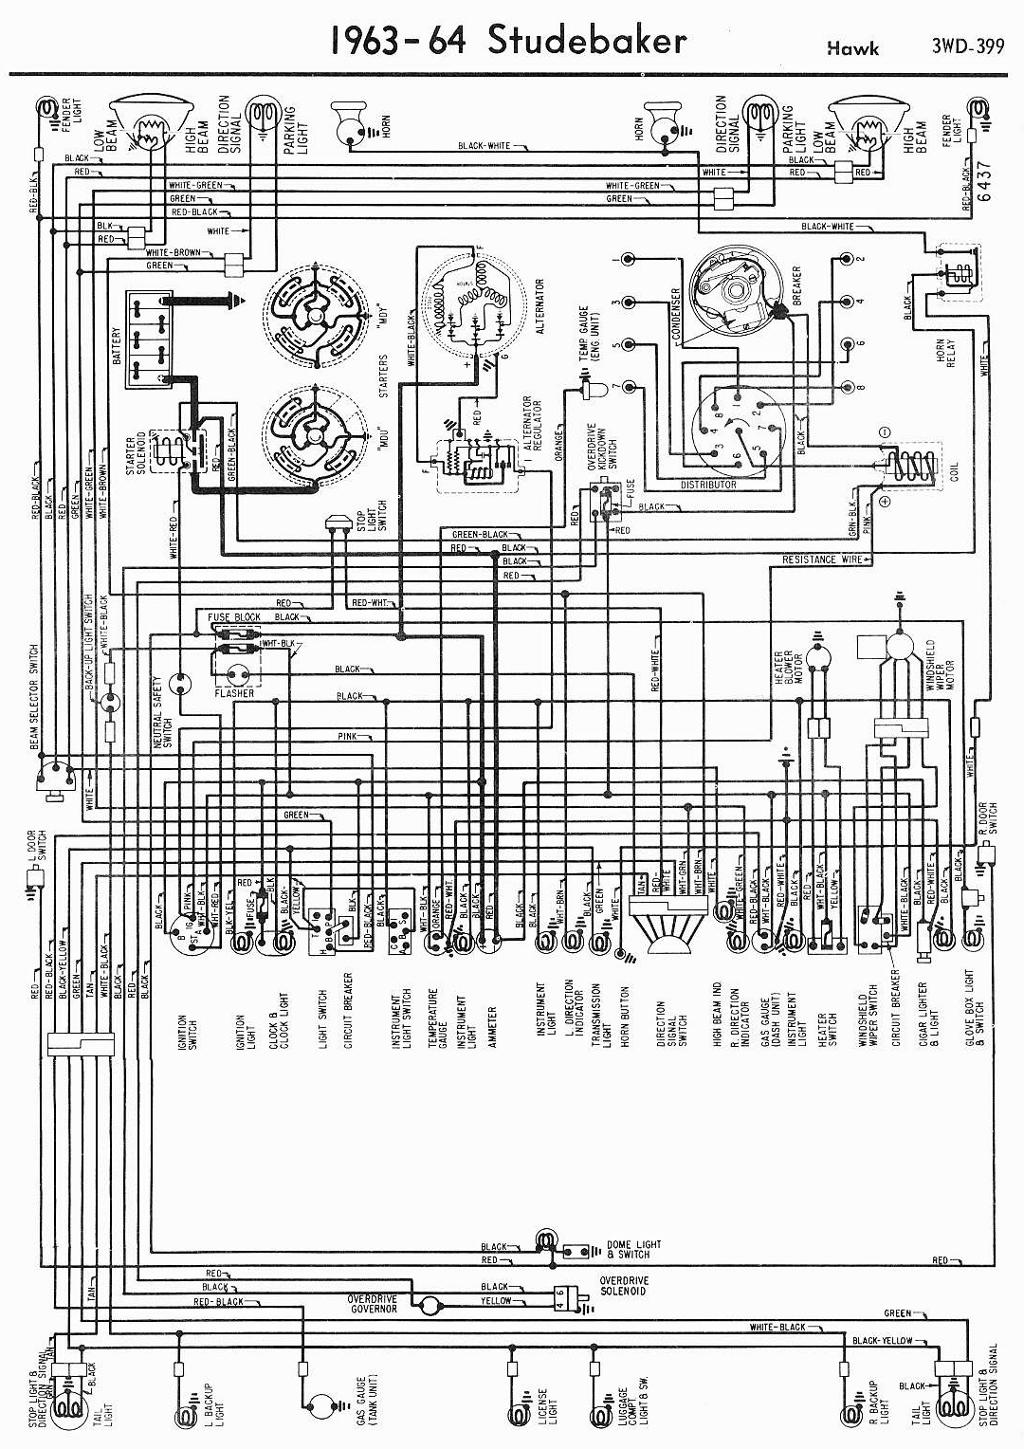 Studebaker Car Manuals Wiring Diagrams Pdf Fault Codes Free Download Roadstar Ii Diagram